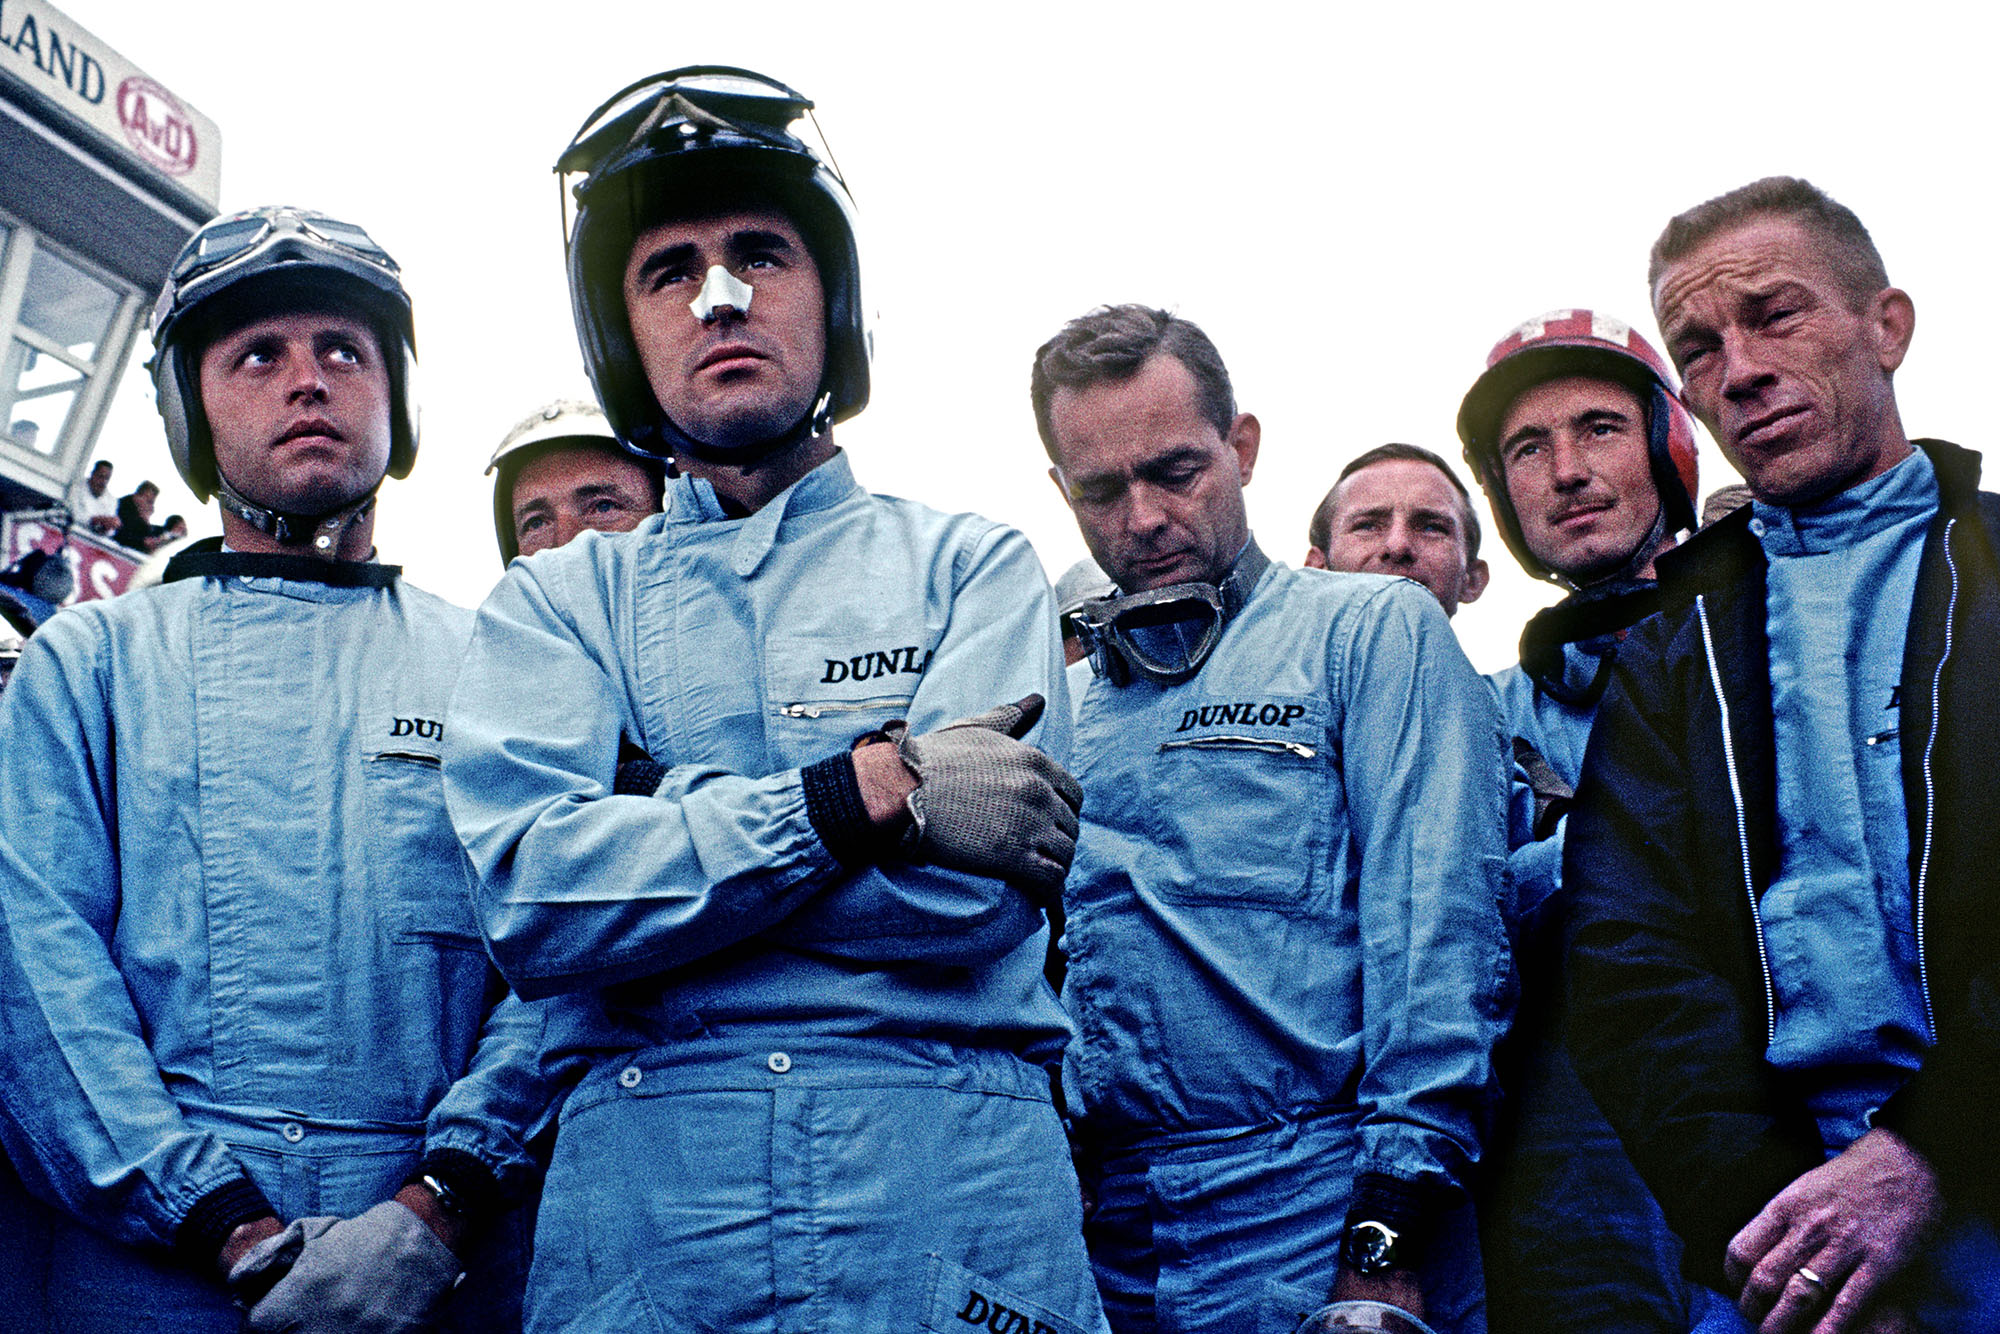 Giancarlo Baghetti (Scuderia Centro Sud BRM), Edgar Barth (Rob Walker Cooper-Climax), Lorenzo Bandini (Ferrari), Phil Hill (Cooper-Climax), Mike Hailwood (Parnell Lotus-BRM), Jo Siffert (privateer Brabham-BRM) and Richie Ginther (BRM) at the drivers briefing before the 1964 German Grand Prix at the Nurburgring.